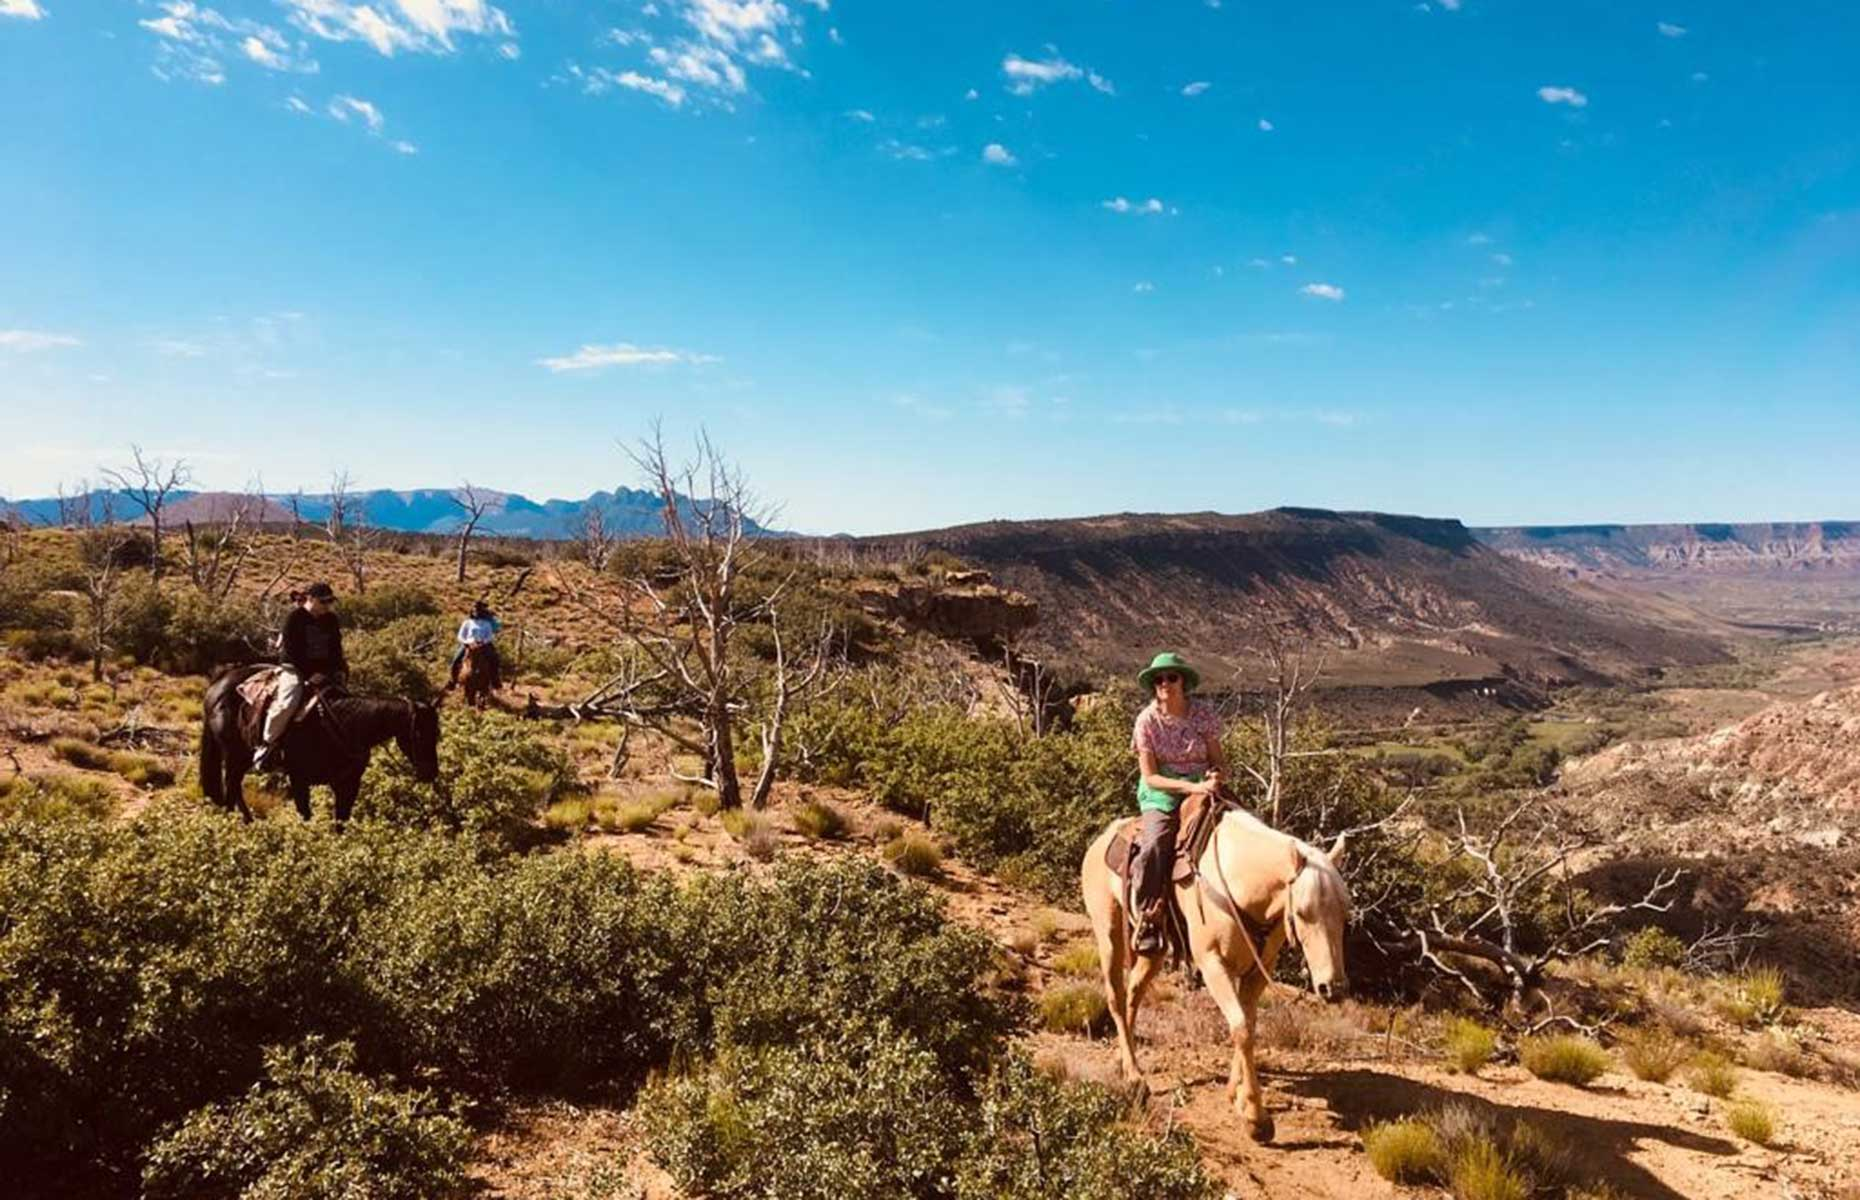 Horseback riding in the Kolob Terrace, Utah